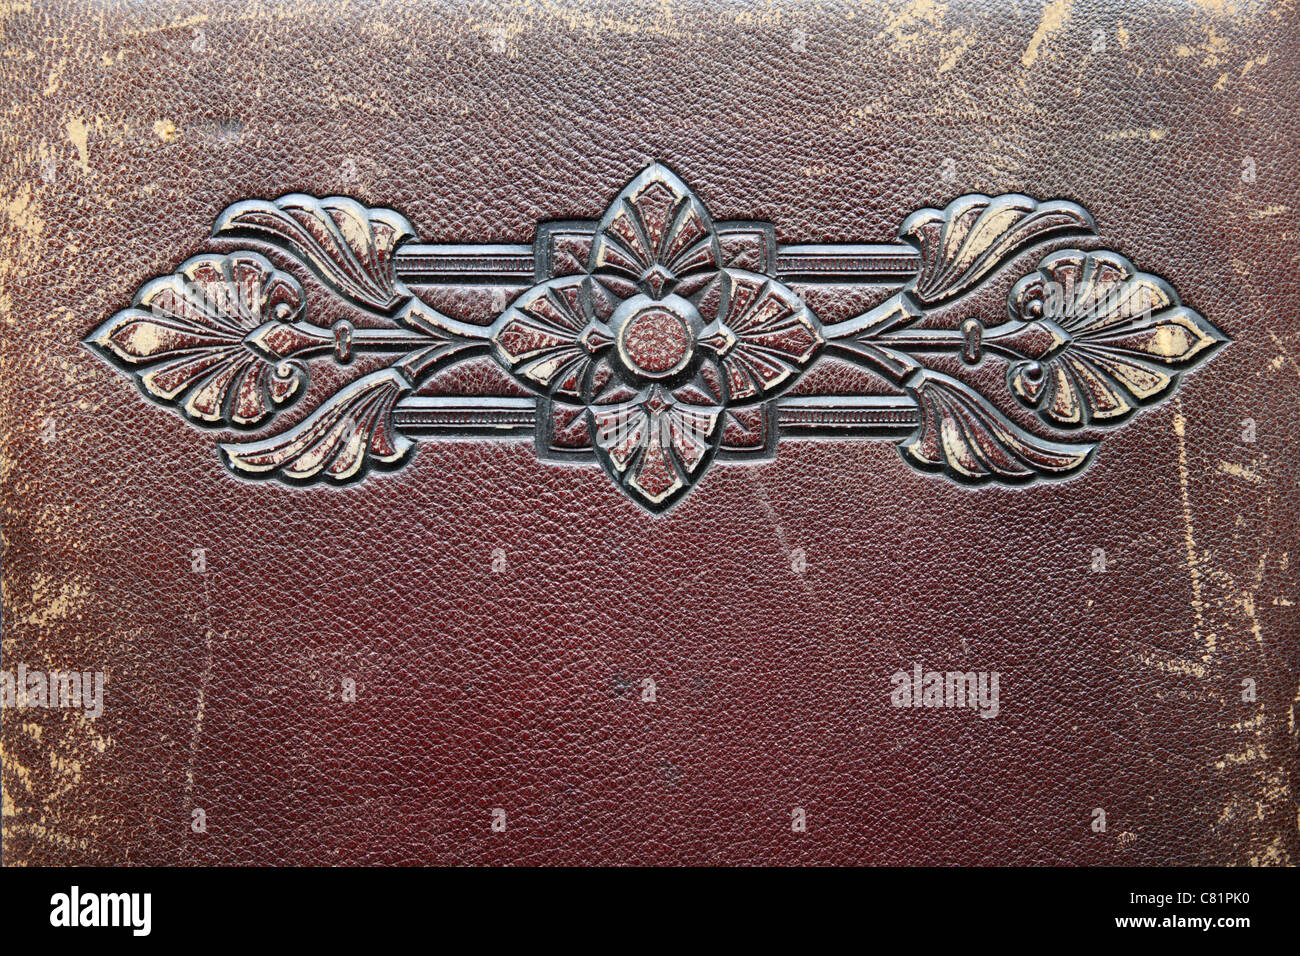 worn antique leather with embossed design - Stock Image